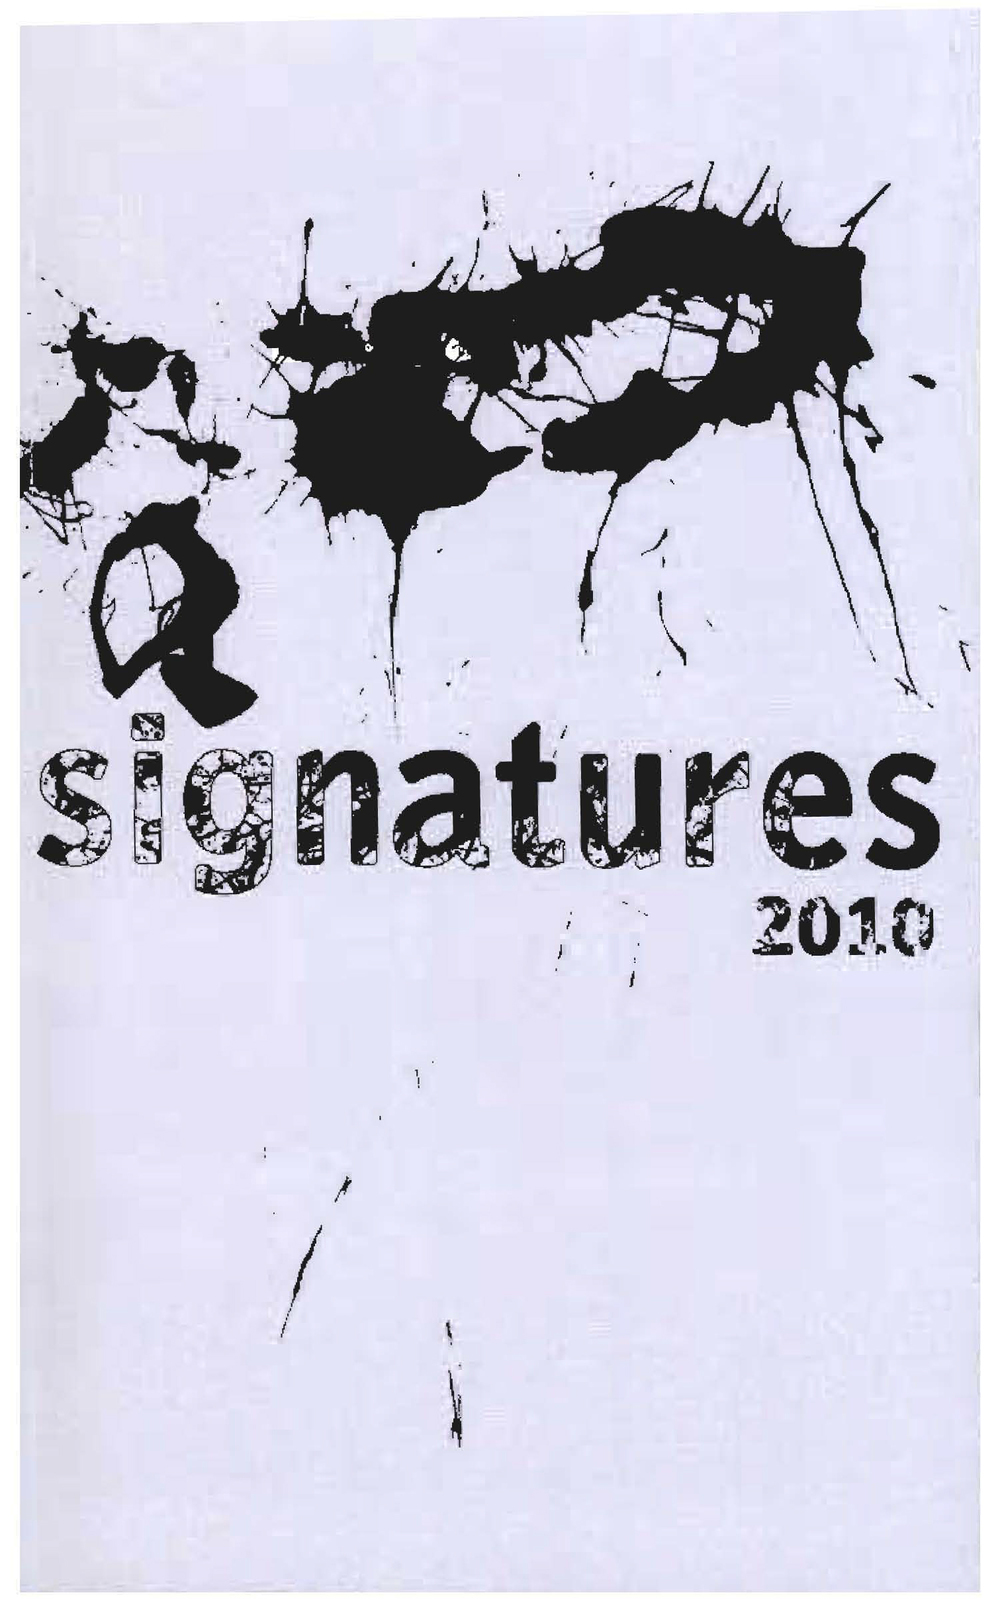 SignaturesBook2010-1.jpg